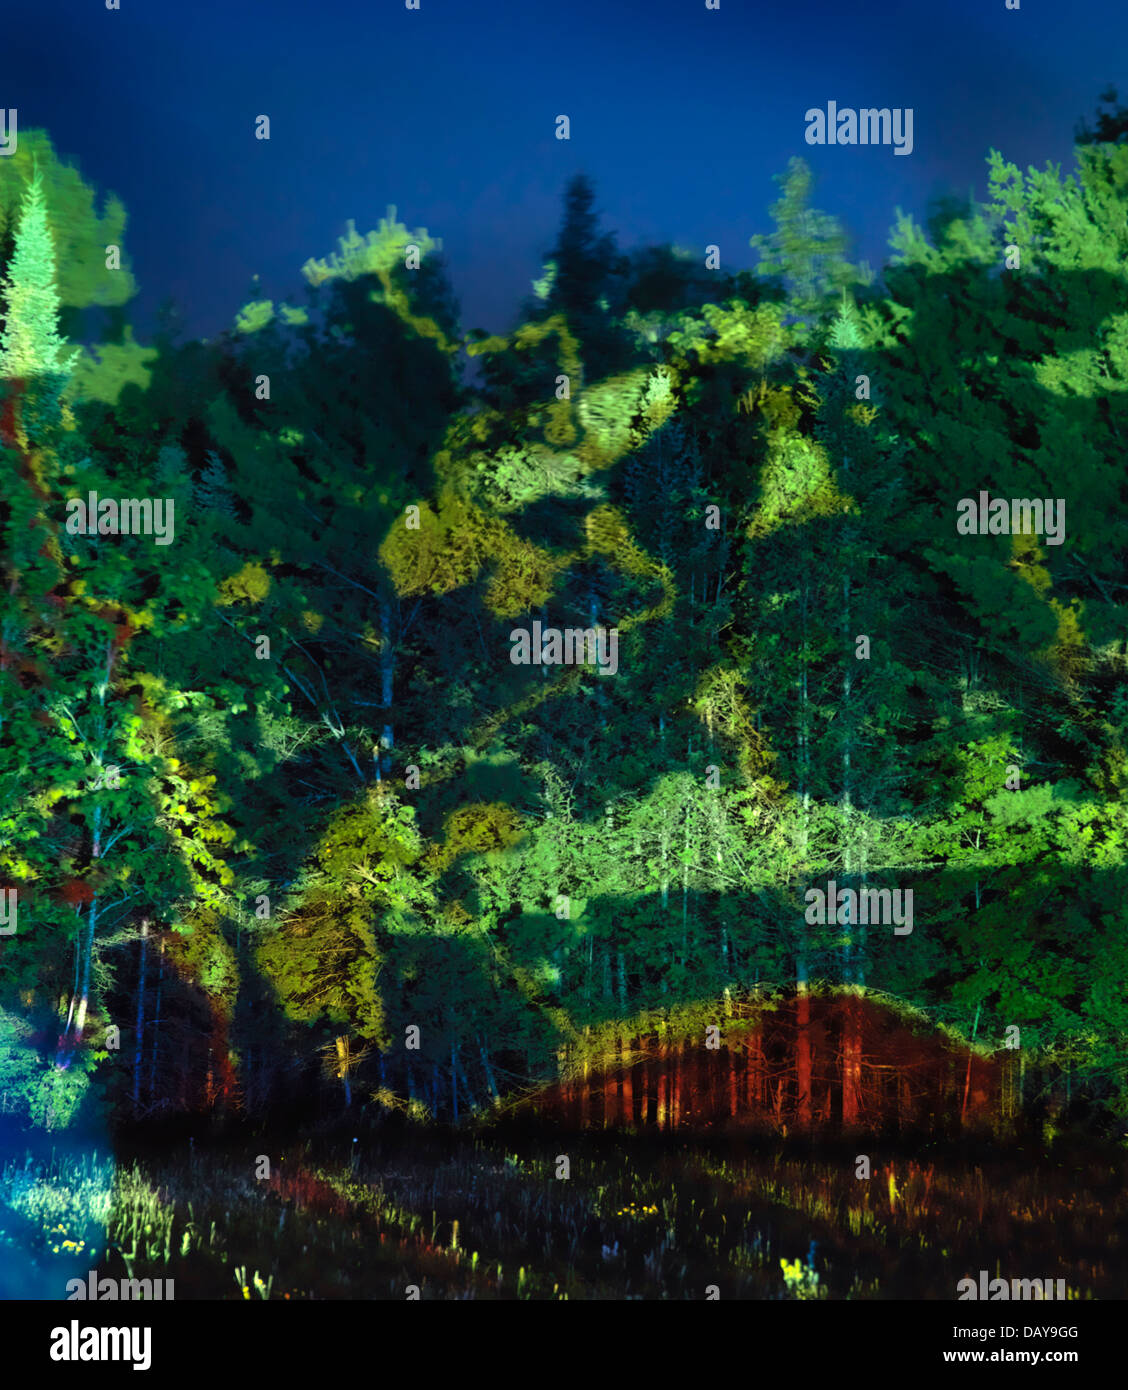 Abstract colorful light projection on green trees, beautiful abstract night nature scenery - Stock Image